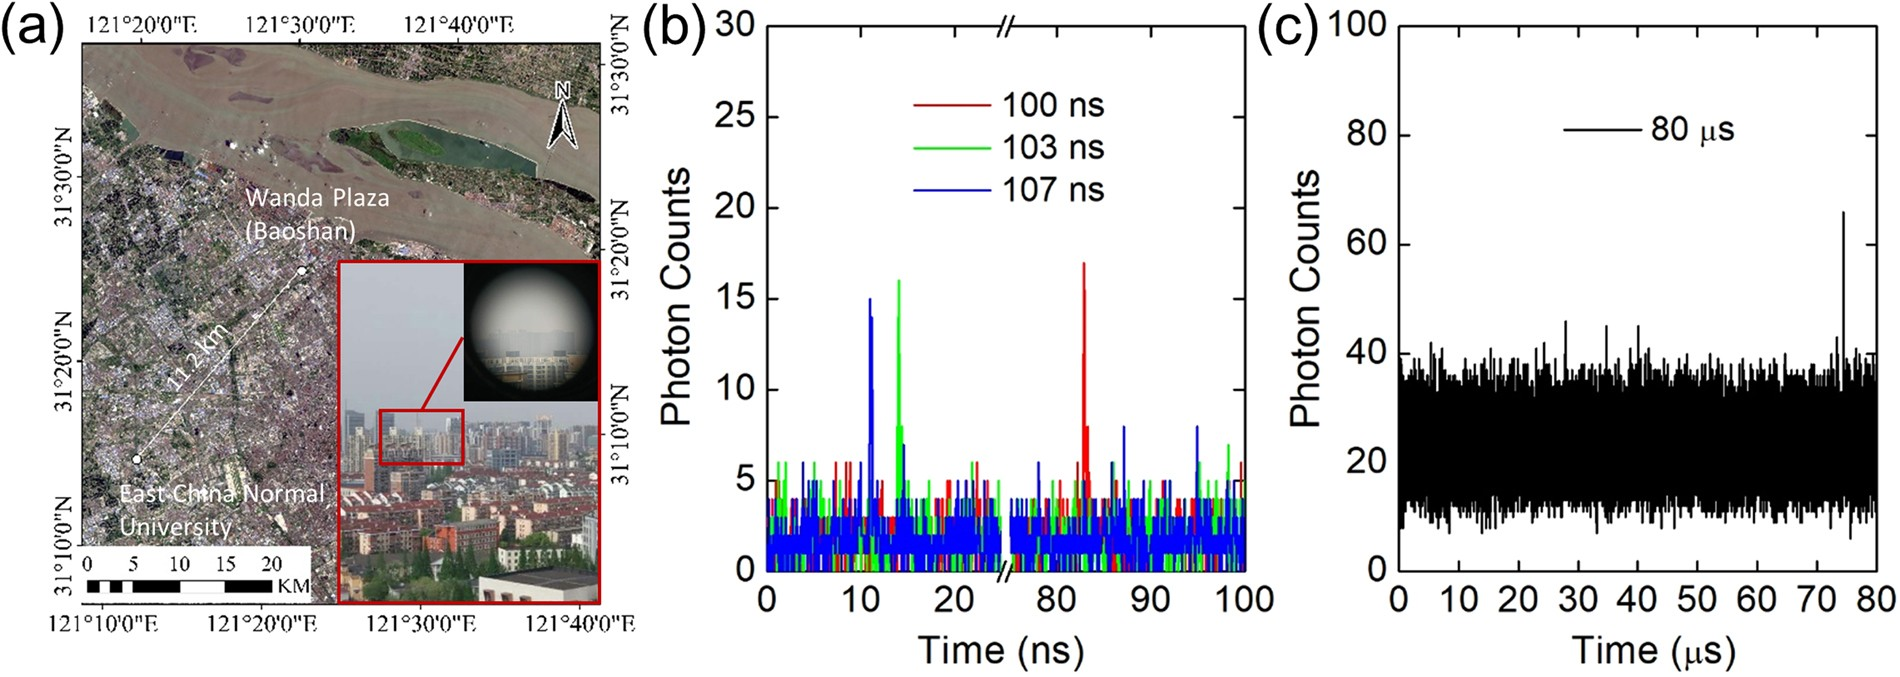 High-speed photon-counting laser ranging for broad range of